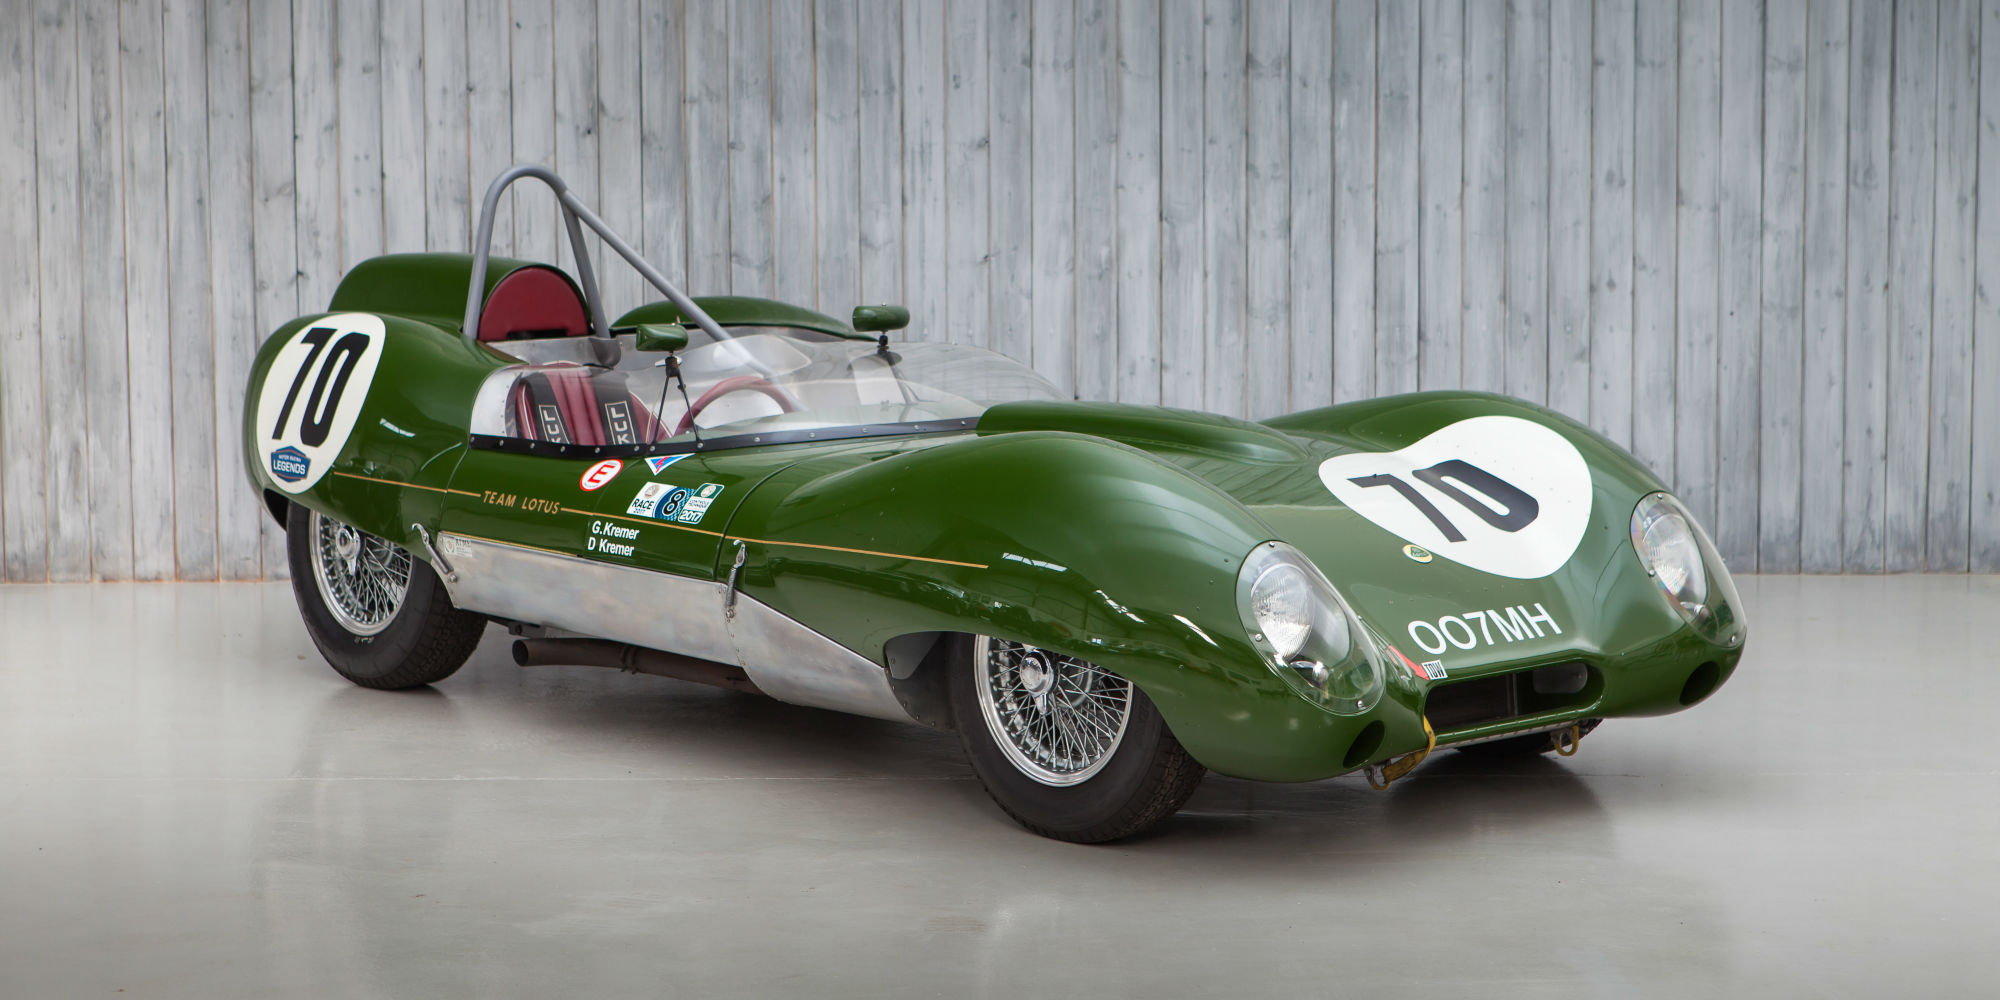 The Ex – Works, Cliff Allison, David Piper 1958 Lotus 15